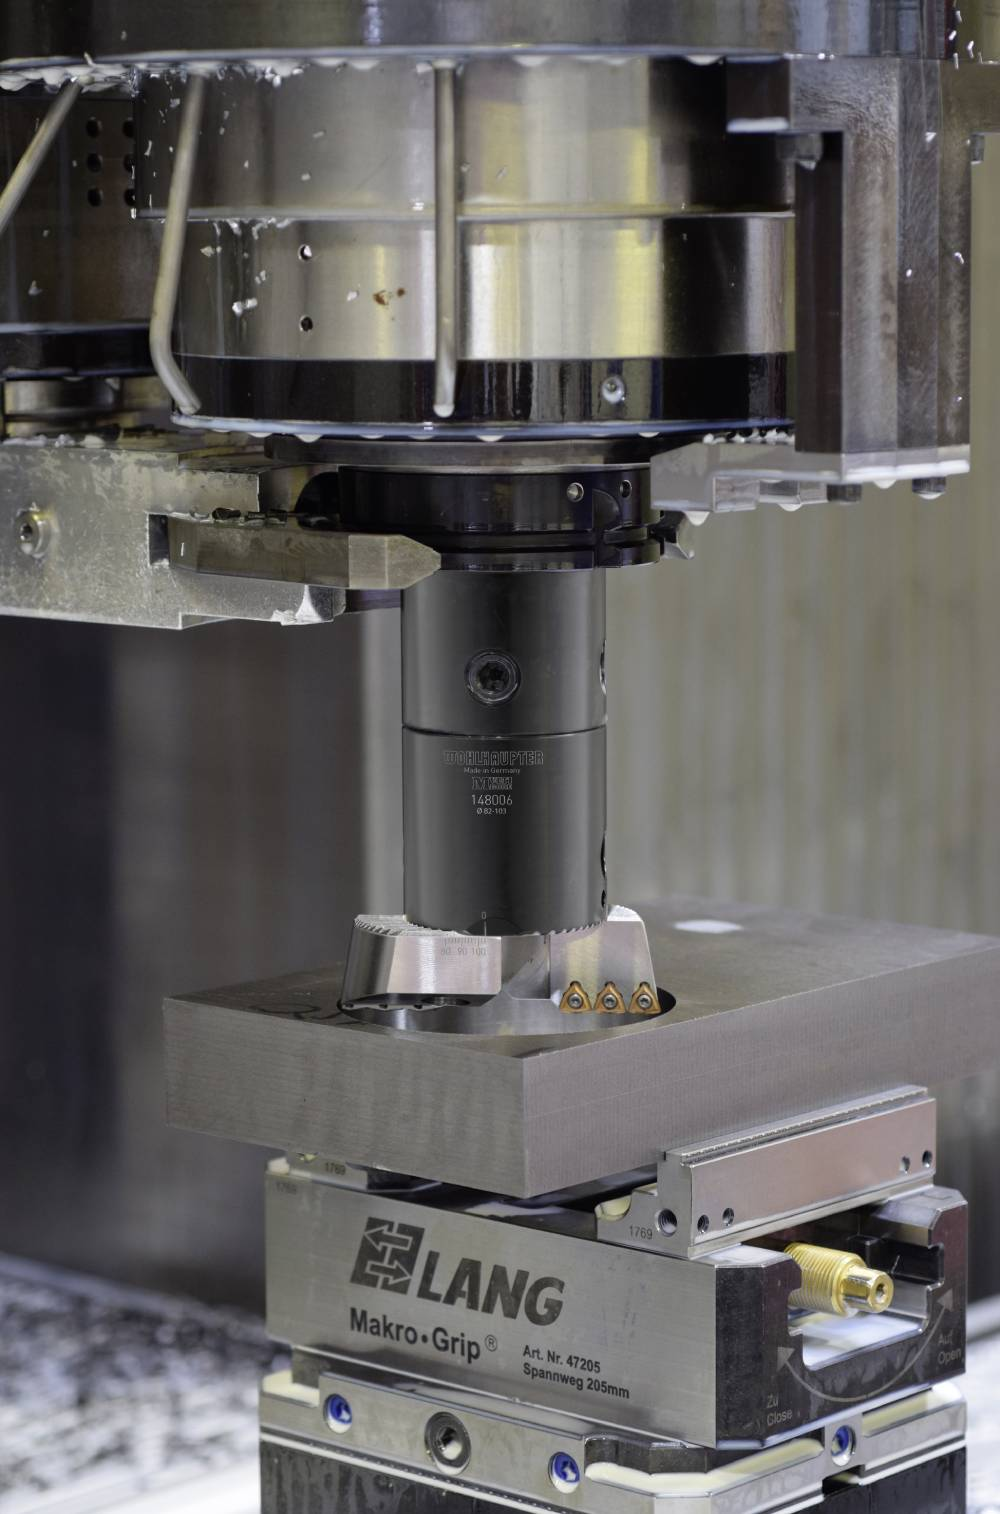 AMEC's VolCut has a unique design incorporates serrations designated to connect seamlessly with Wohlhaupter's Twin Cutter and AluLine boring systems.